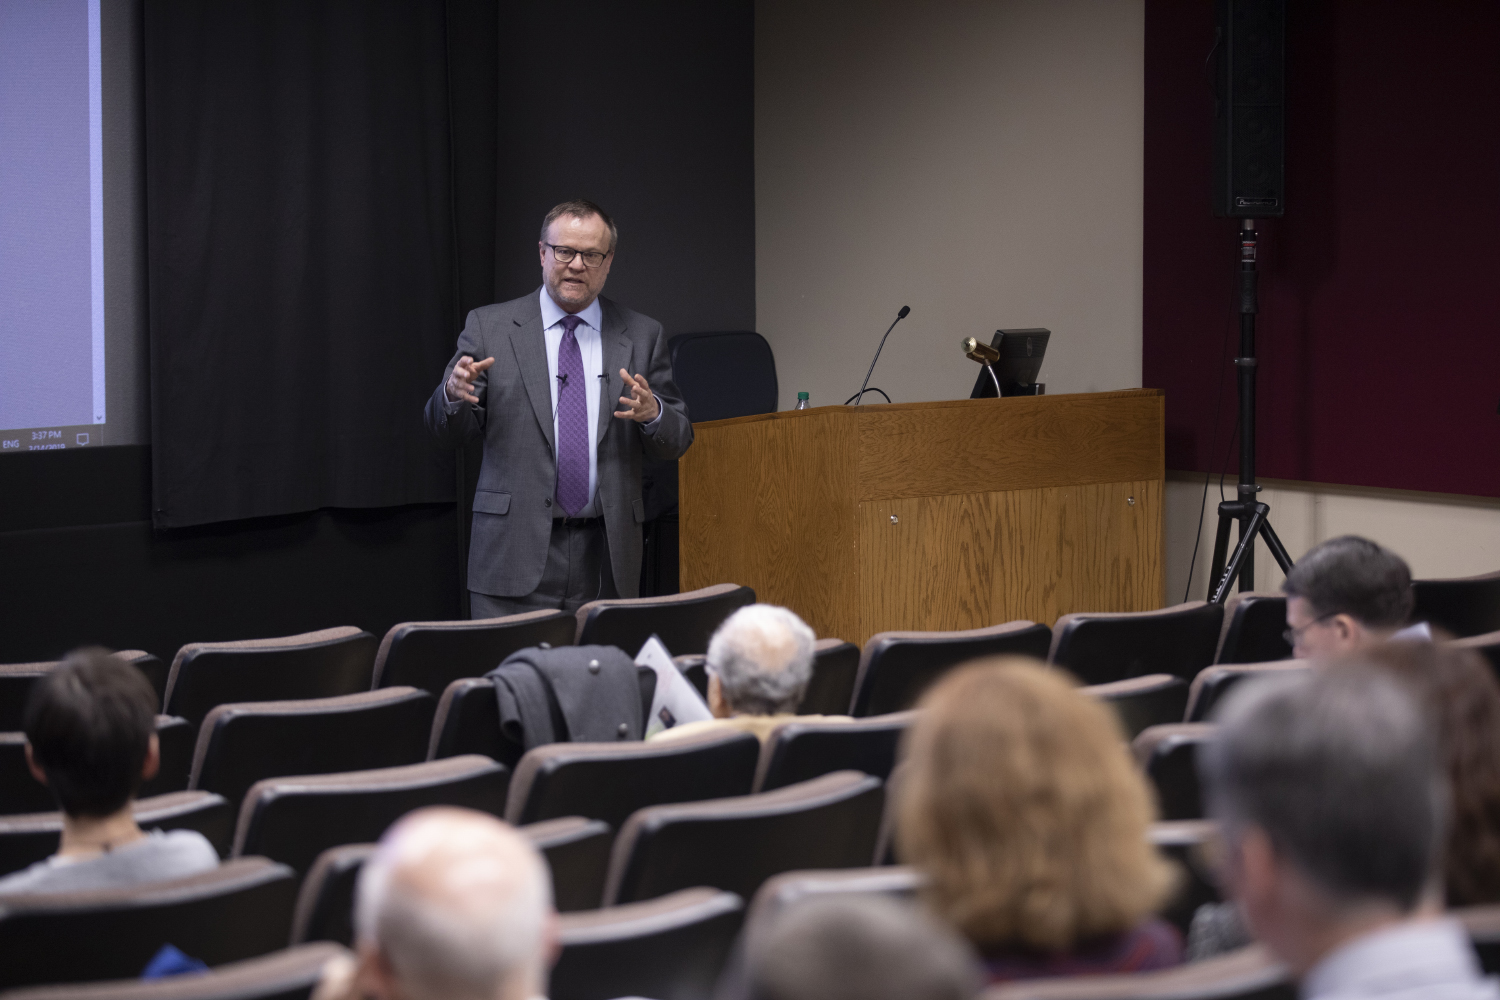 J. Martin Scholtz of the Texas A&M University College of Medicine speaks during the VP for Research candidate forum on Thursday, Feb. 14, 2019. Scholtz is the first candidate in the search.